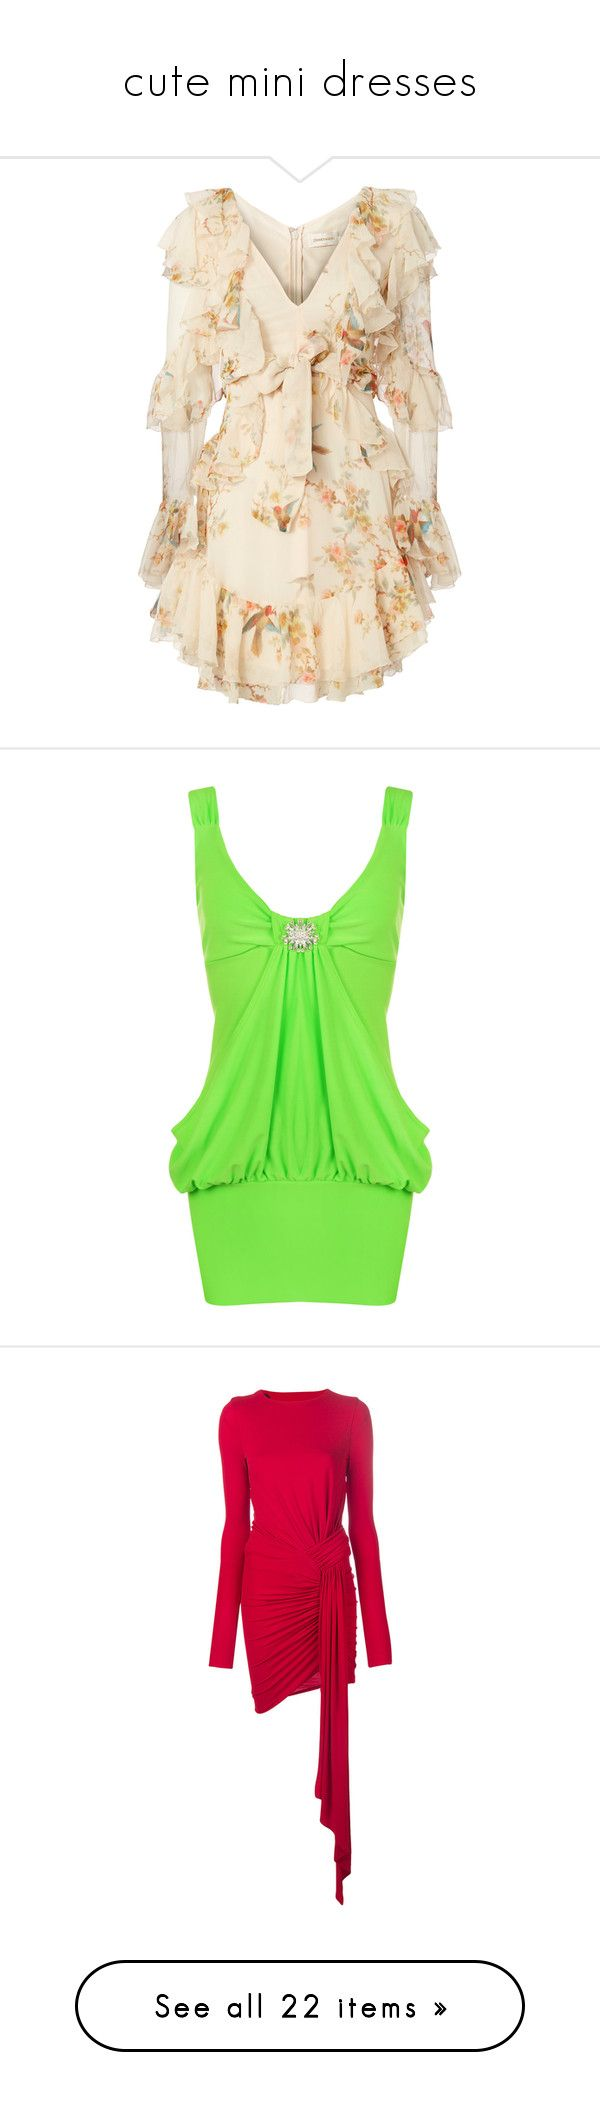 """""""cute mini dresses"""" by isaiahkiss ❤ liked on Polyvore featuring dresses, print, zimmermann dresses, zimmermann, ruffle trim dress, pink frilly dress, flounce dress, fluorescent green, stretchy dresses and neon green dress"""